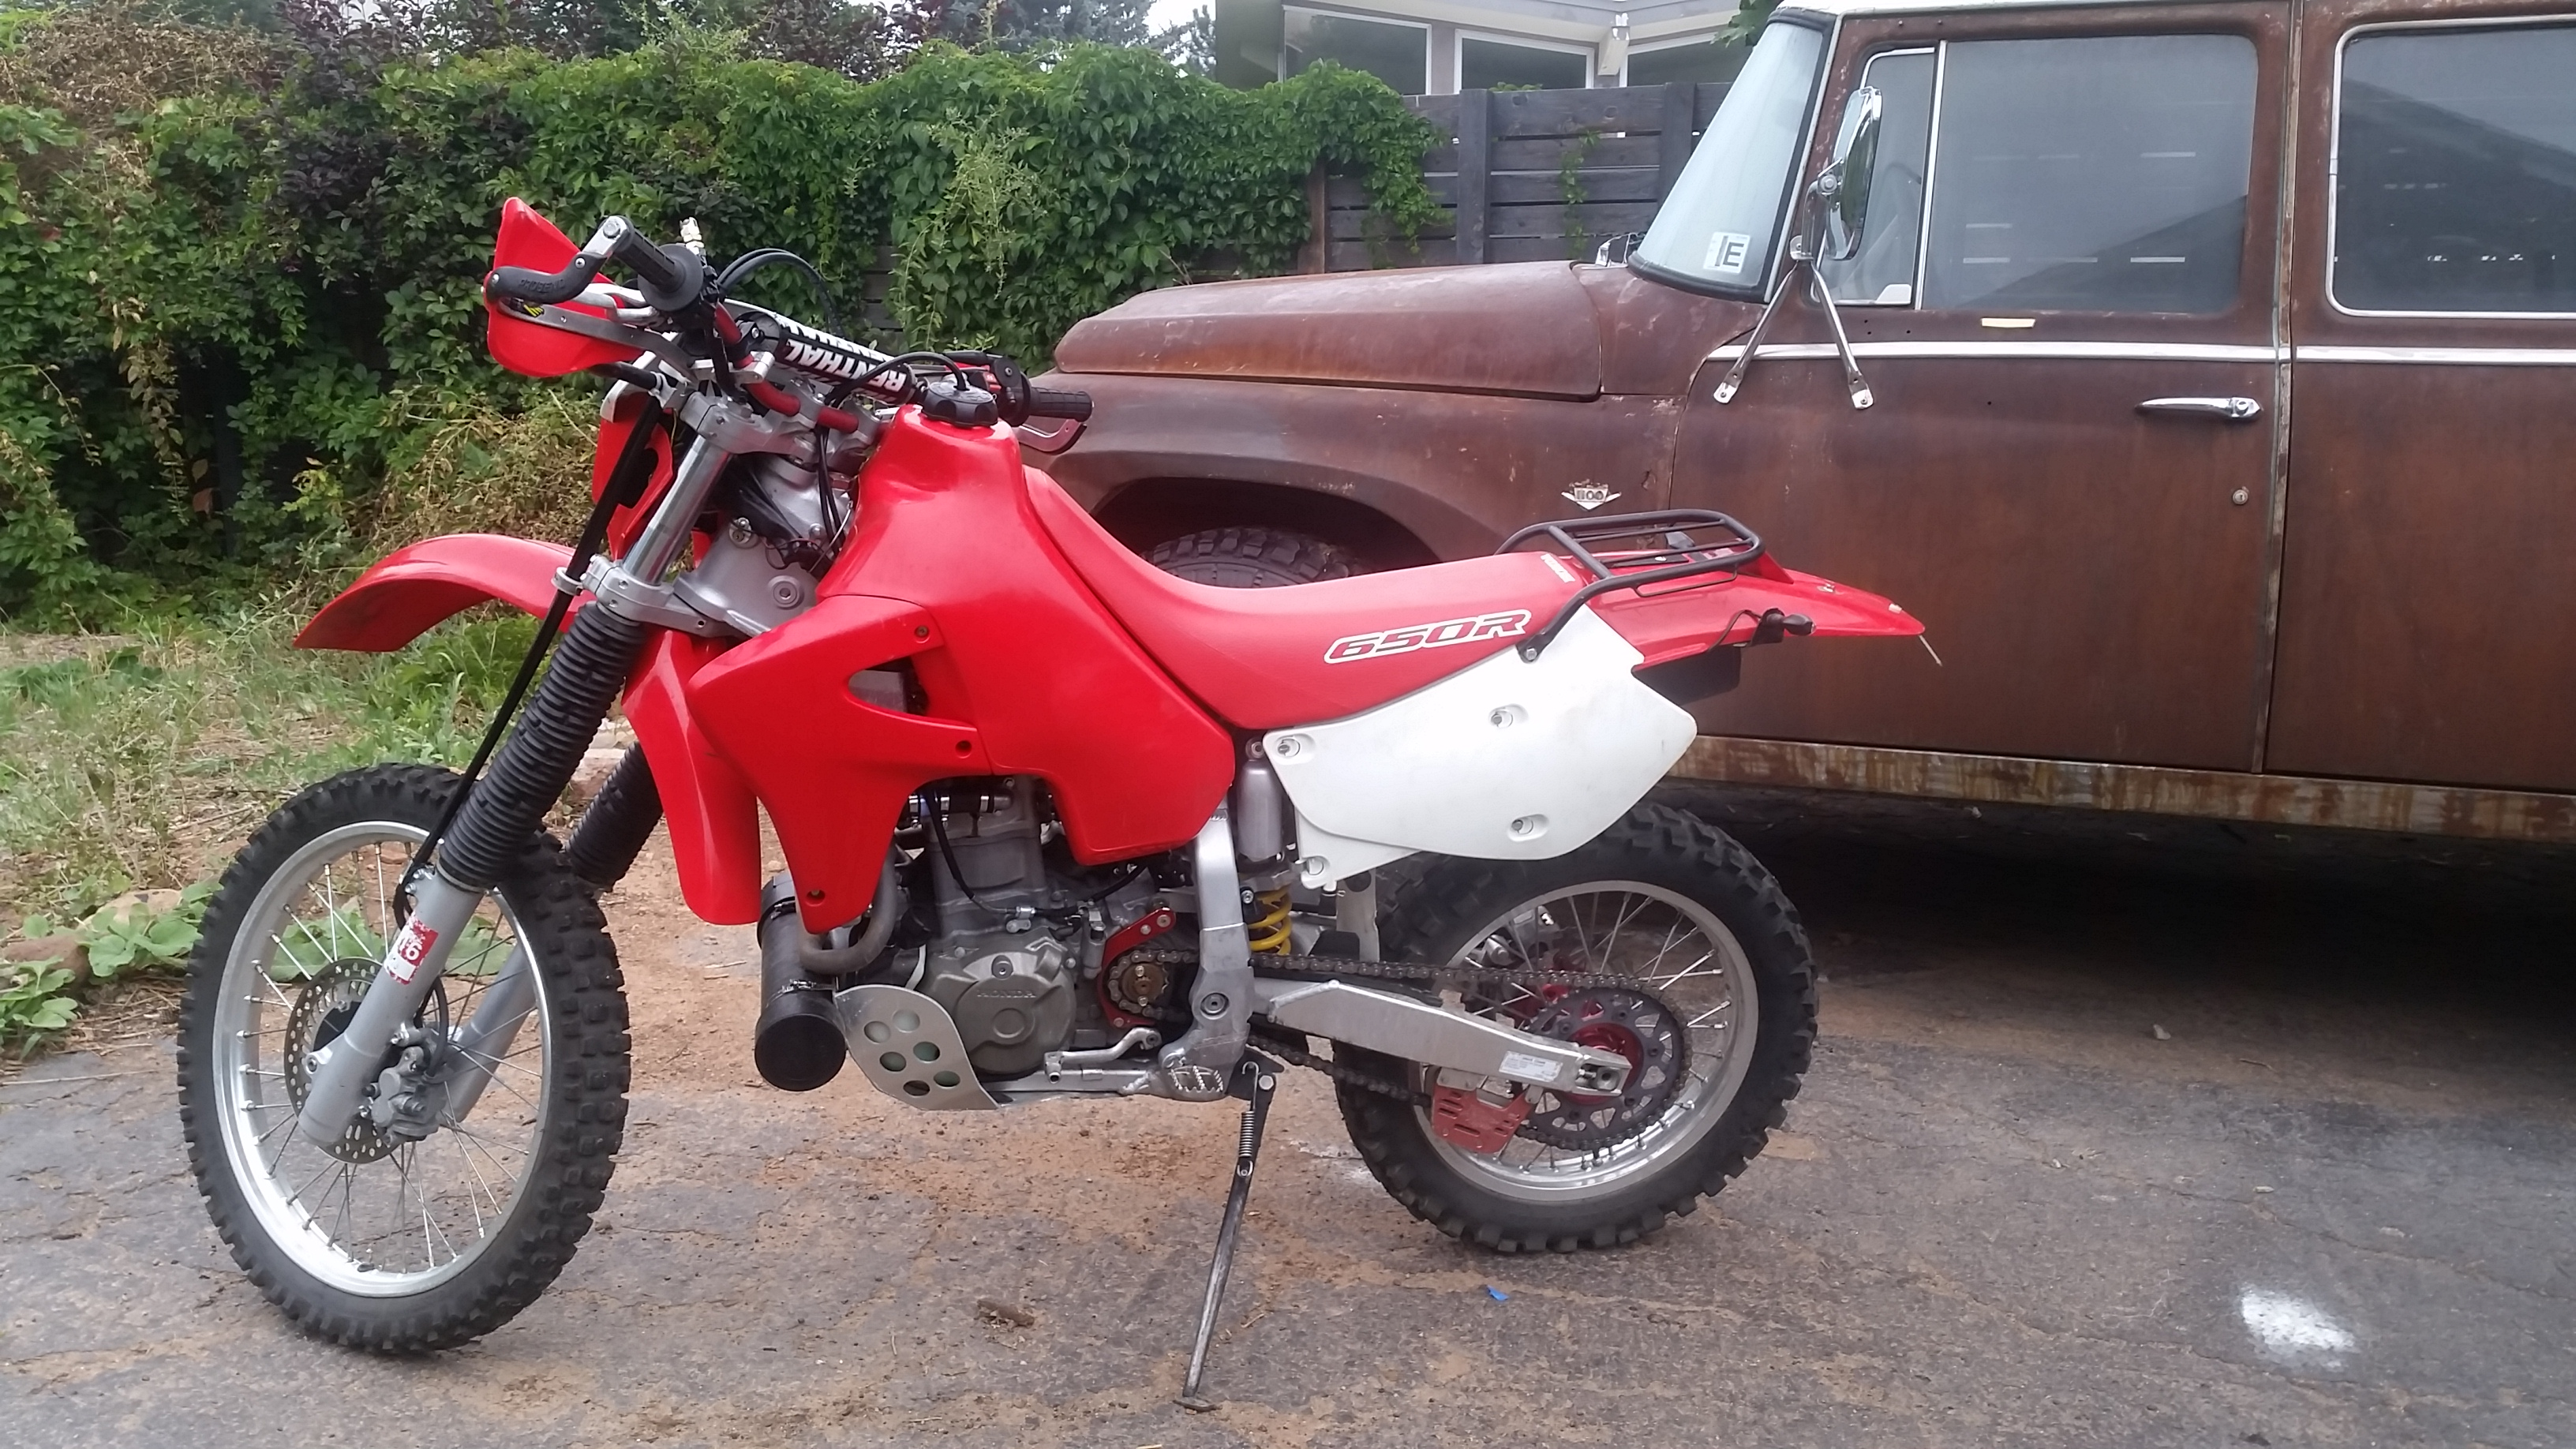 Avoid Honda Xr650r Motorcycle Engine Damageuse The Correct Main And Xl500r Wiring Diagram Pilot Jets Dirt Dual Sport Motorcycles 4wd Mechanix Magazine Tech Travel